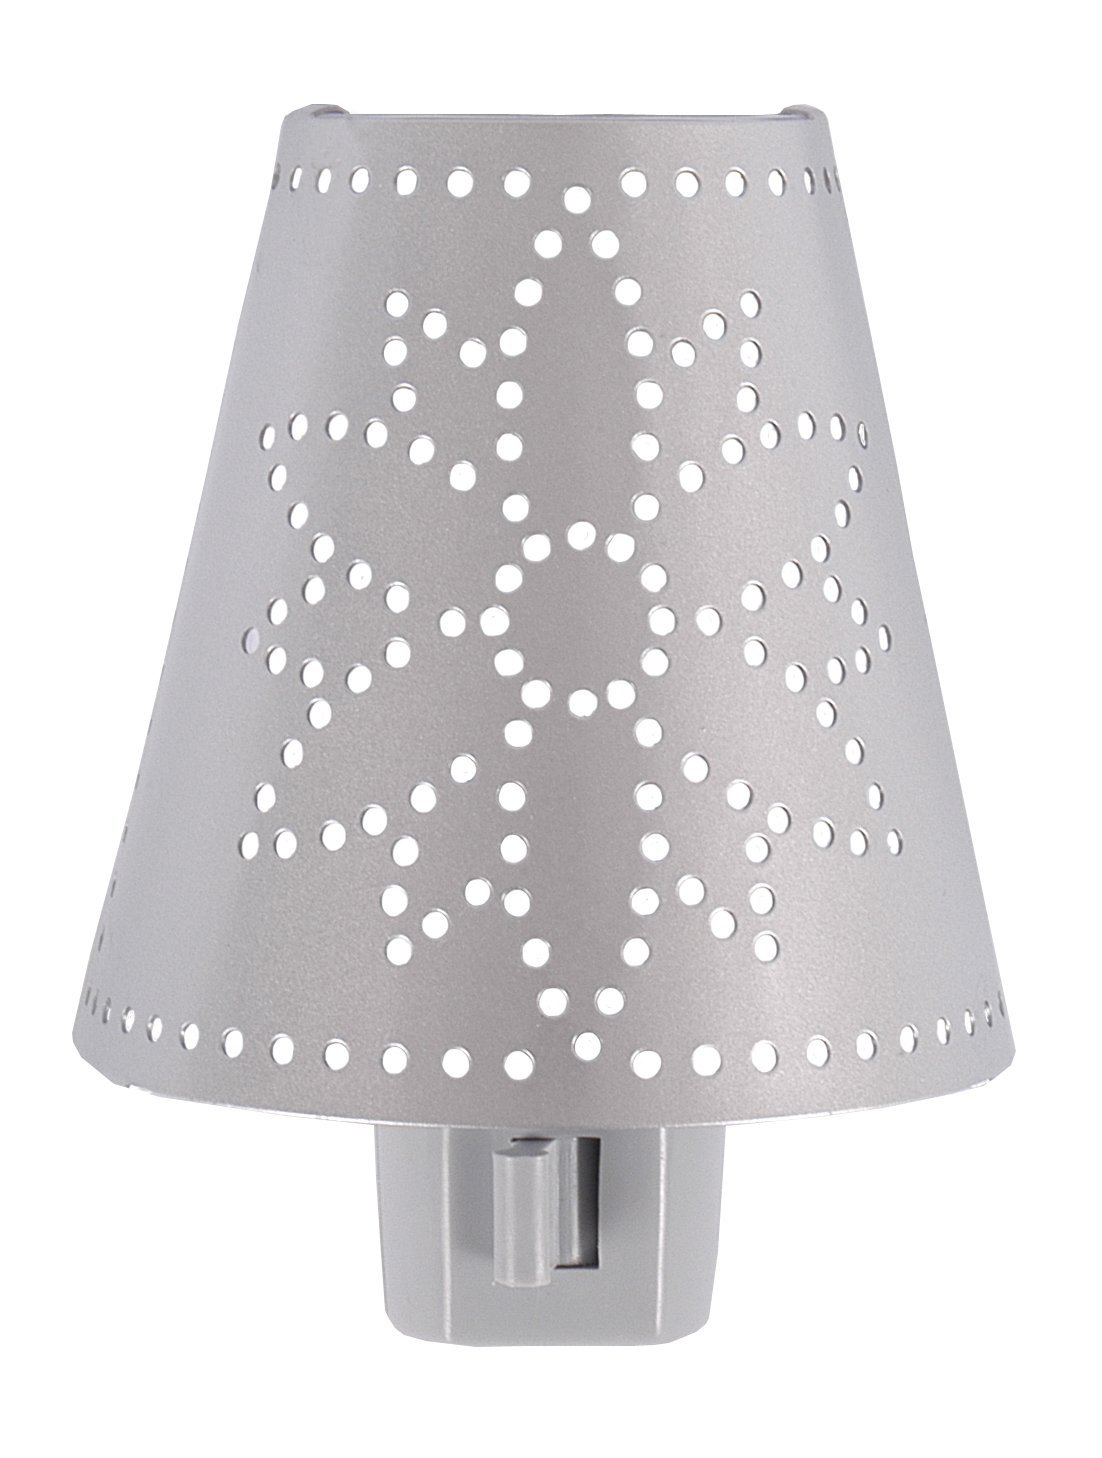 GE Metal Shade With Flower Design Incandescent Night Light 51386